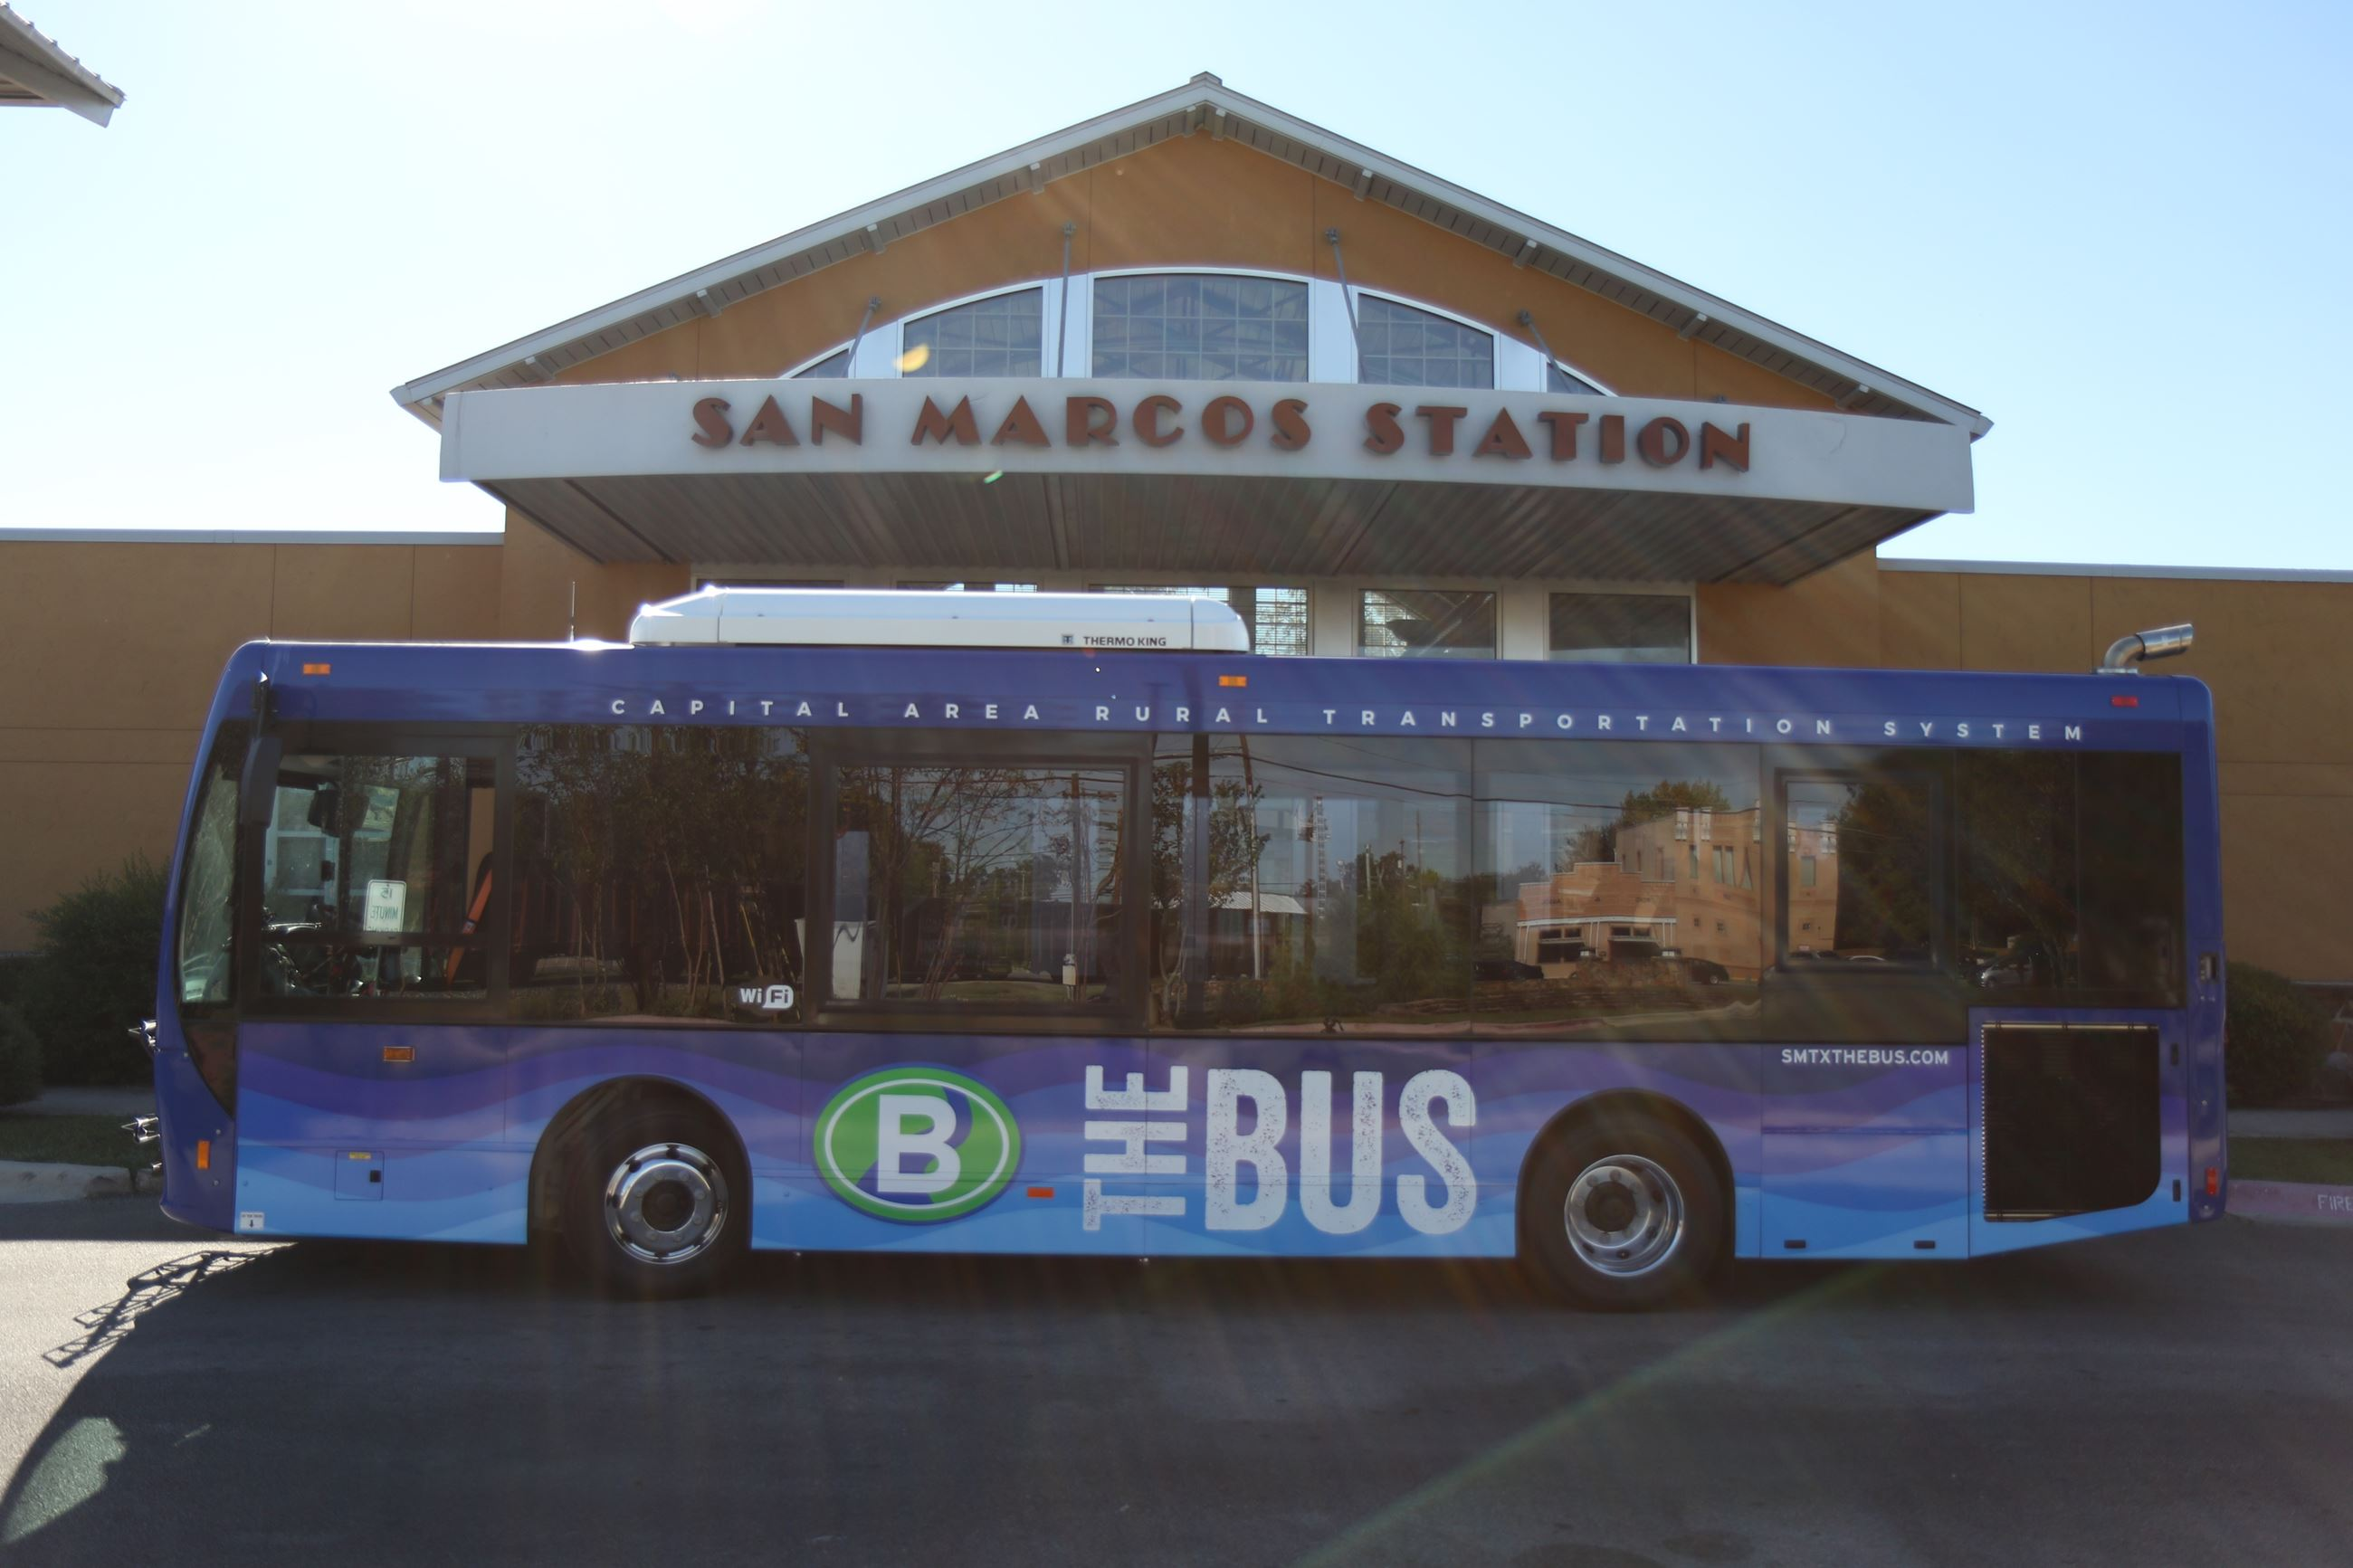 San Marcos &#34The Bus&#34 vehicle in front of bus station